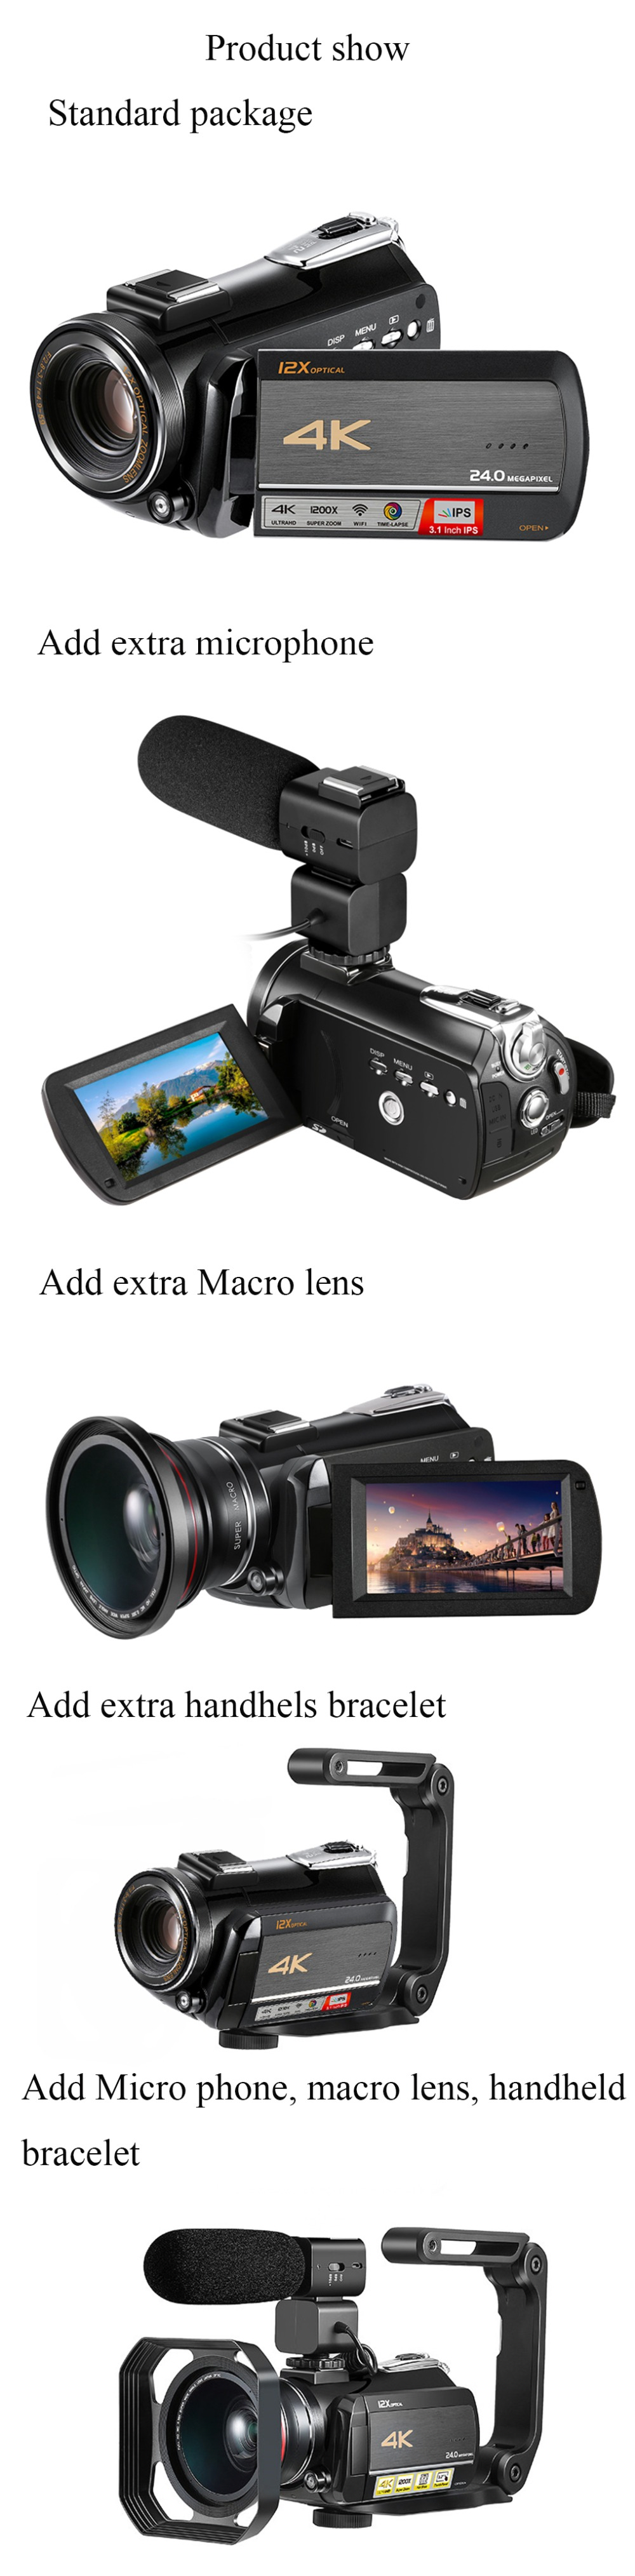 4k WIFI Digital Video Camcorder with 3.0'' Touch Display/12 x Optical Zoom Professional Home Use Digital Camcorder 11